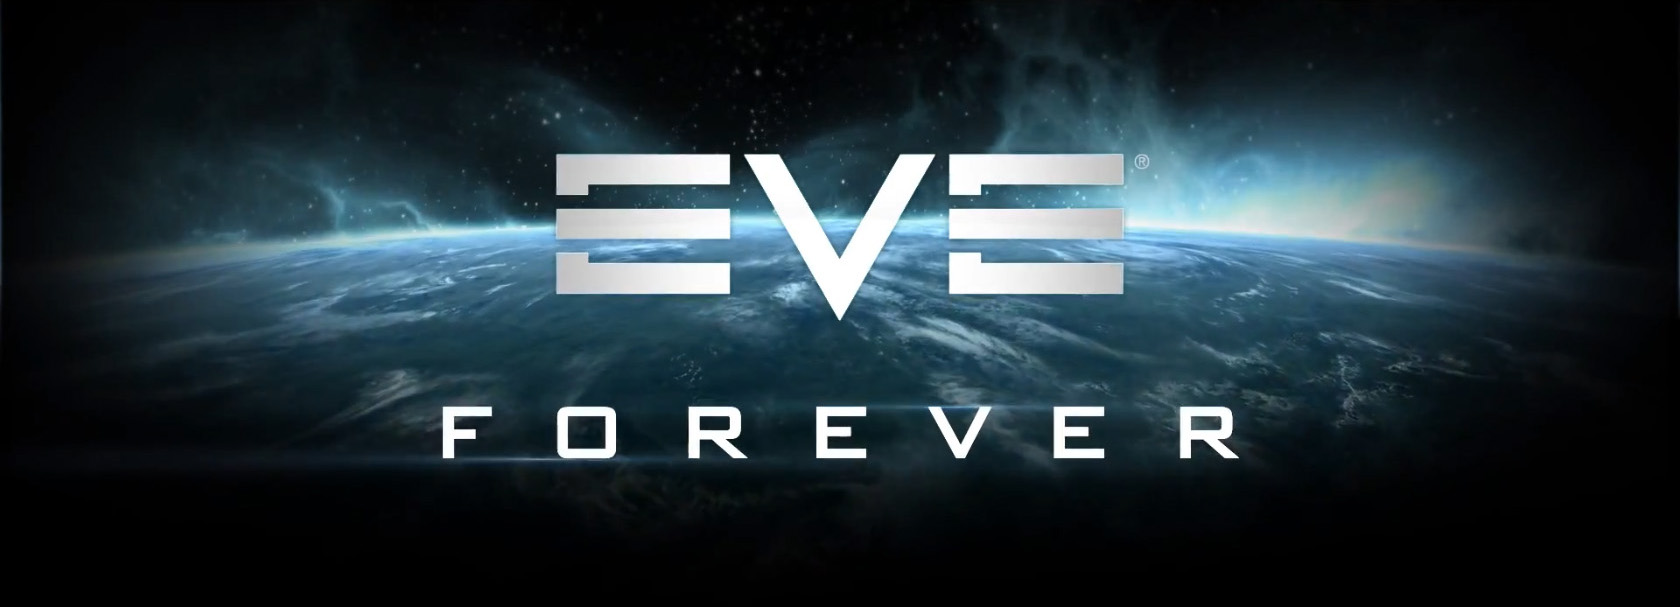 how to play eve online for free forever